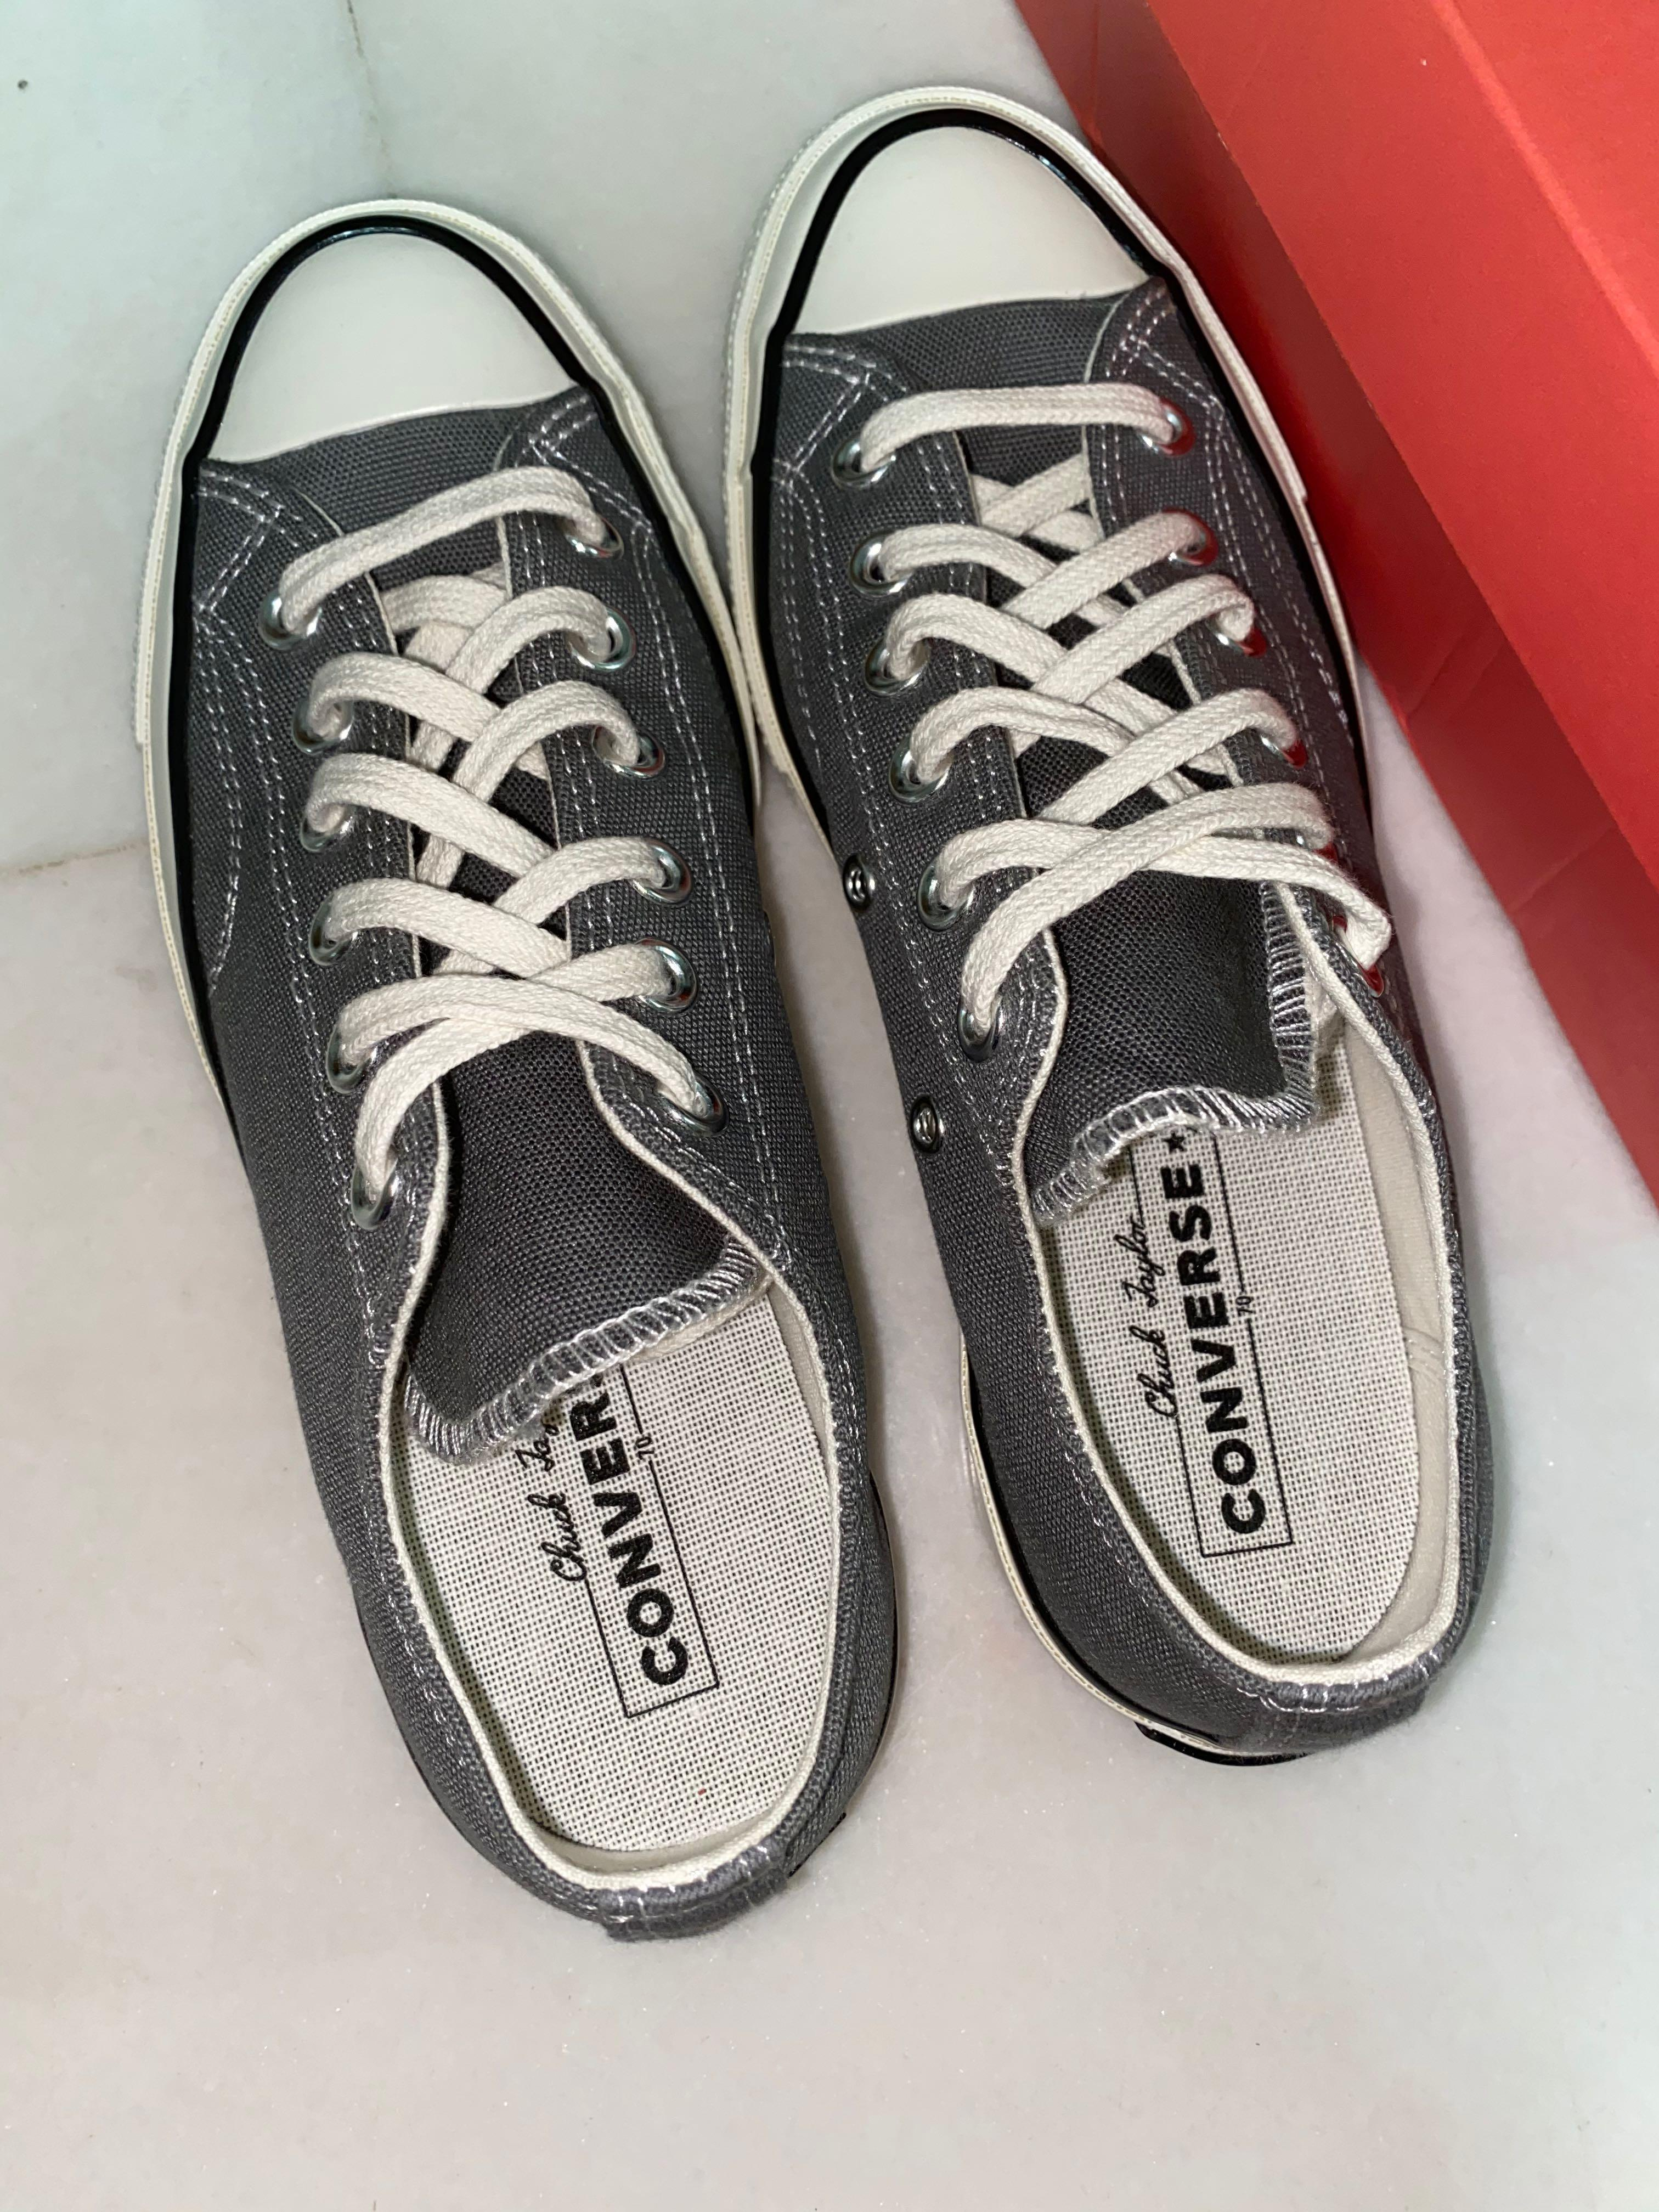 Converse Chuck Taylor 70 Low Cut in